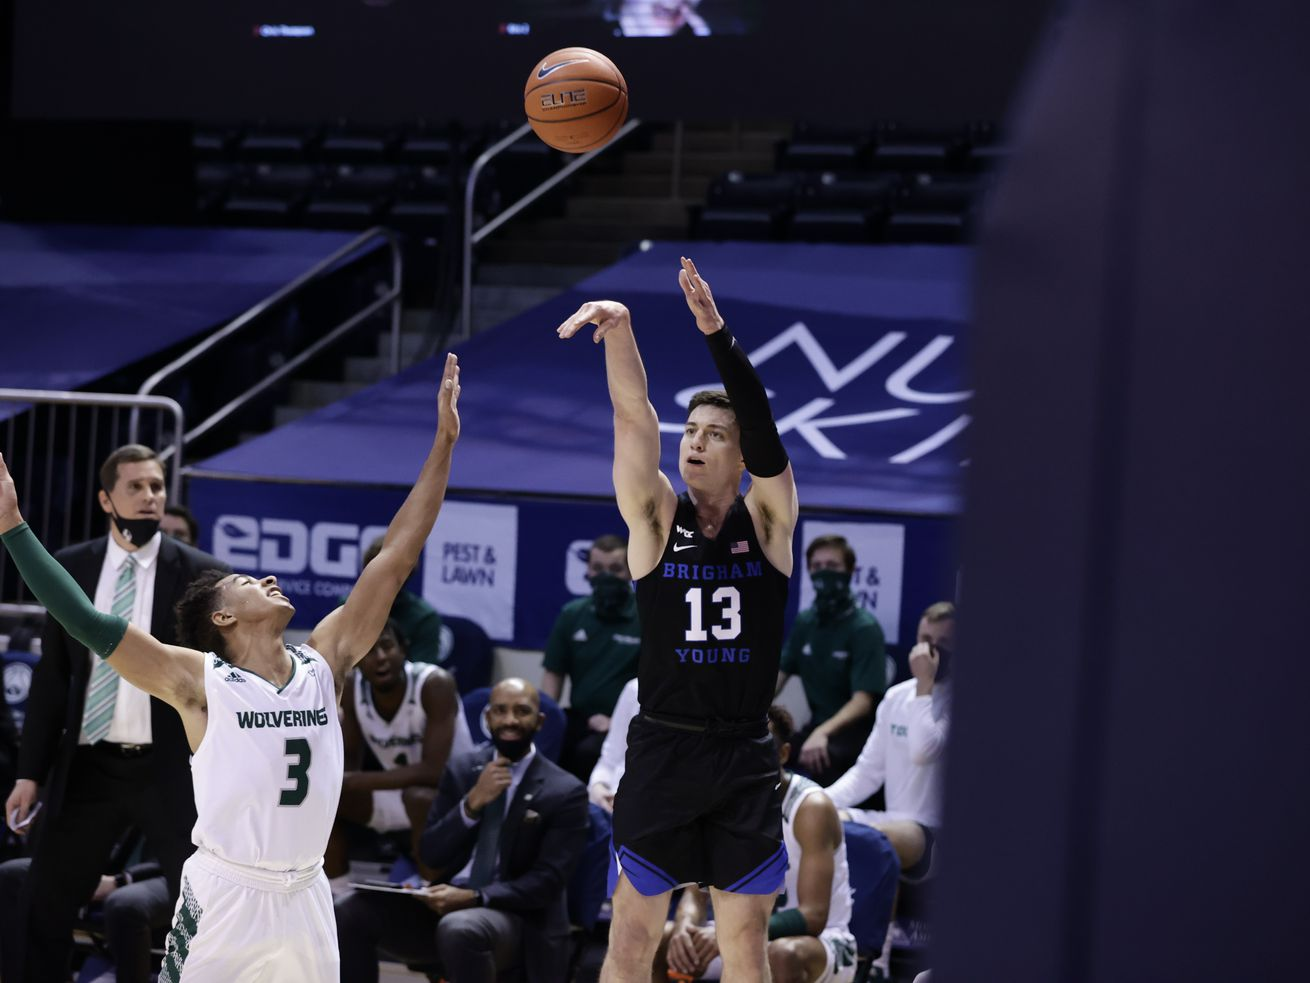 Superior depth the difference as BYU rolls past neighboring Utah Valley in Crosstown Clash